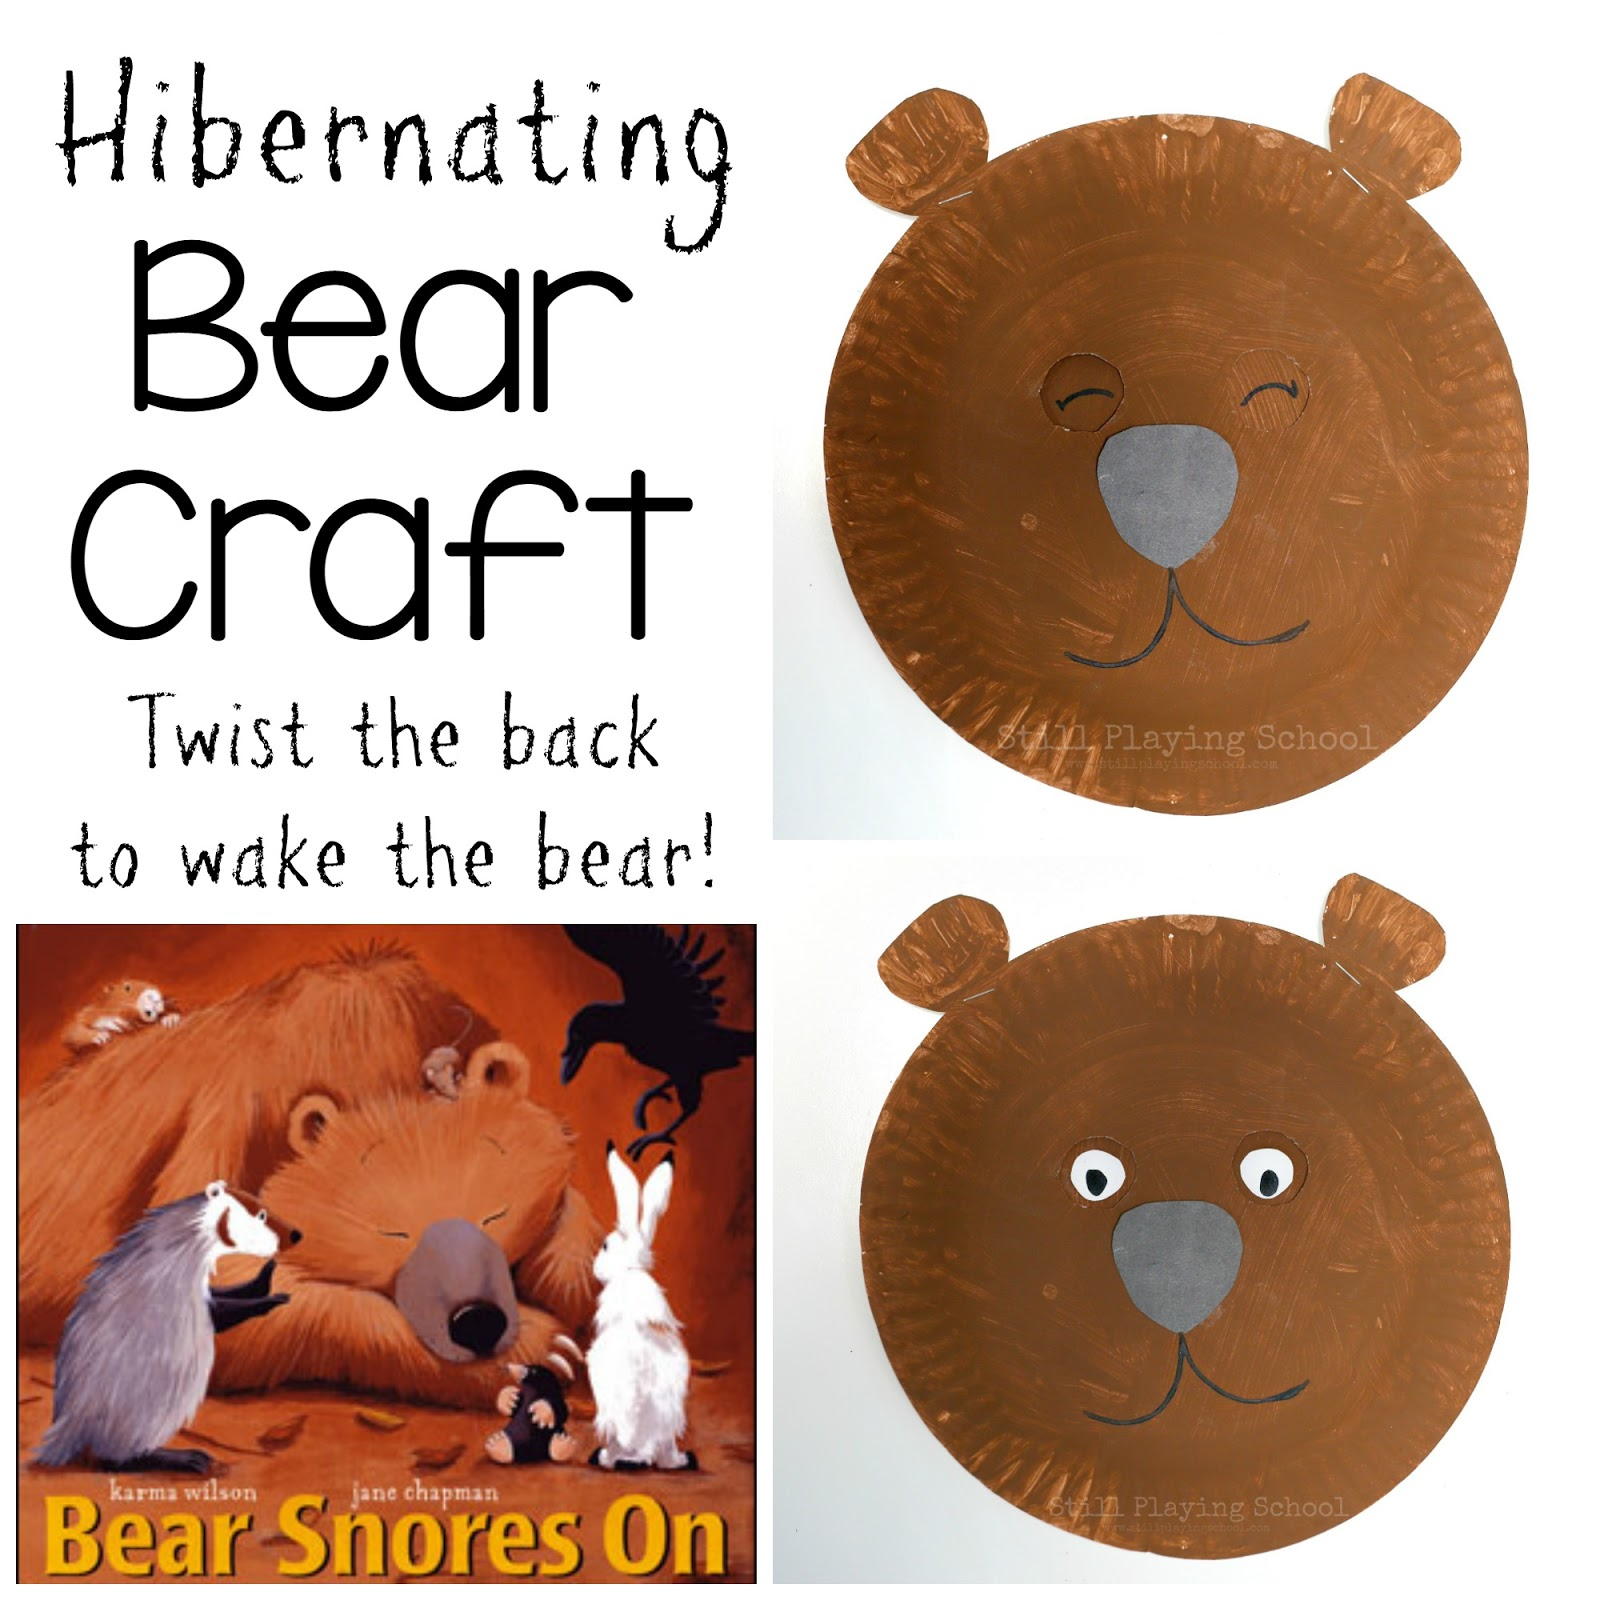 Hibernating Bear Craft For Kids